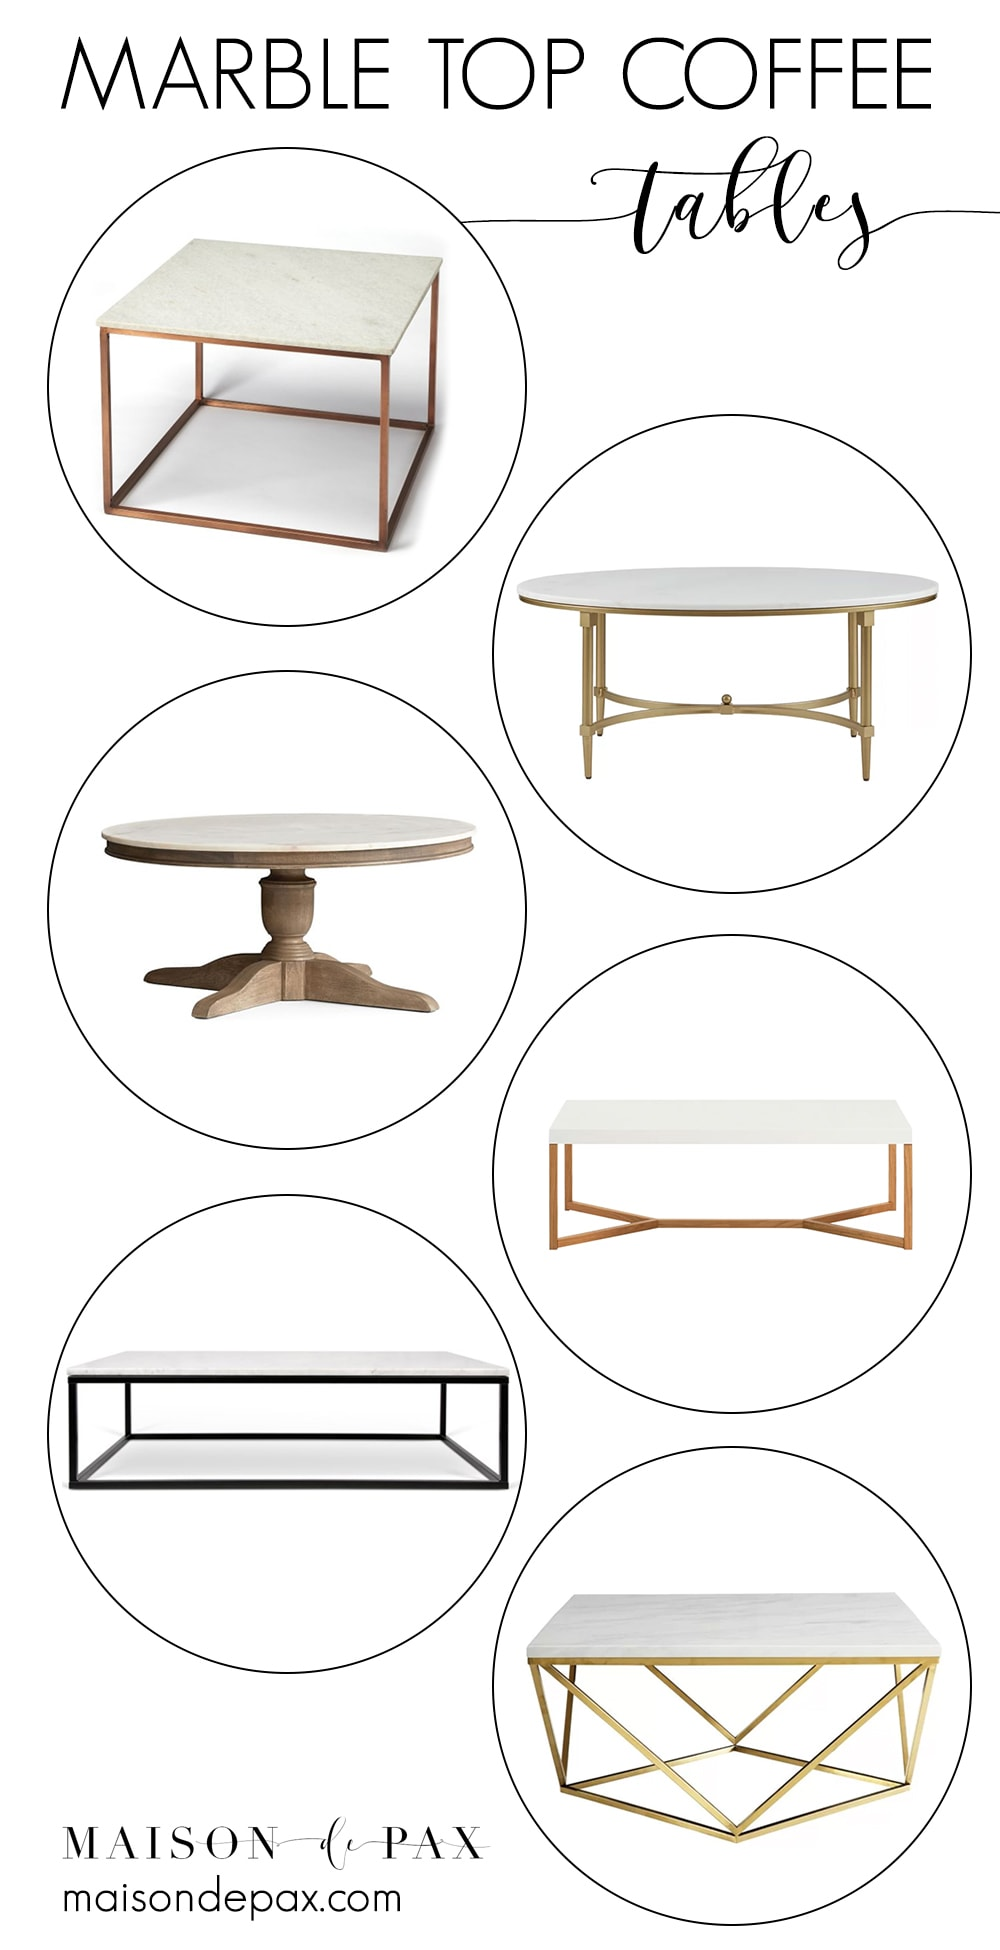 Looking for a marble top coffee table? Check out all these gorgeous options and a variety of prices!! #marbletop #marblecoffeetable #coffeetable #elegantfurniture #livingroomfurniture